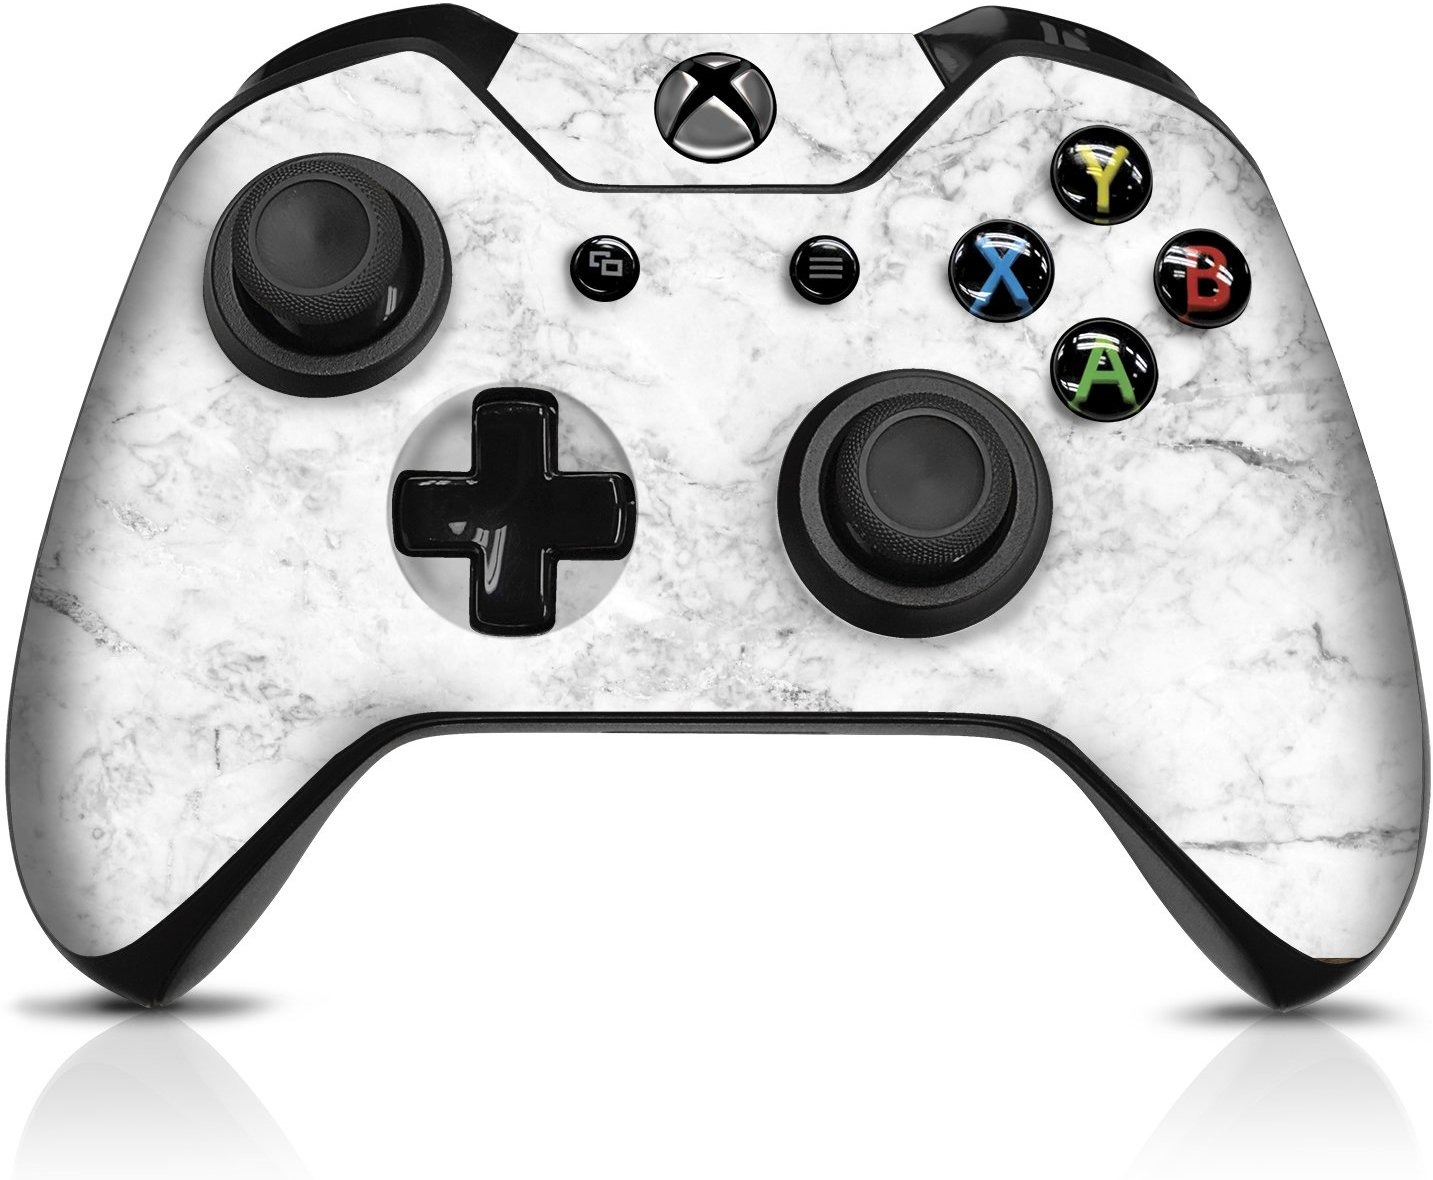 Gaming Controller Drawing at GetDrawings com | Free for